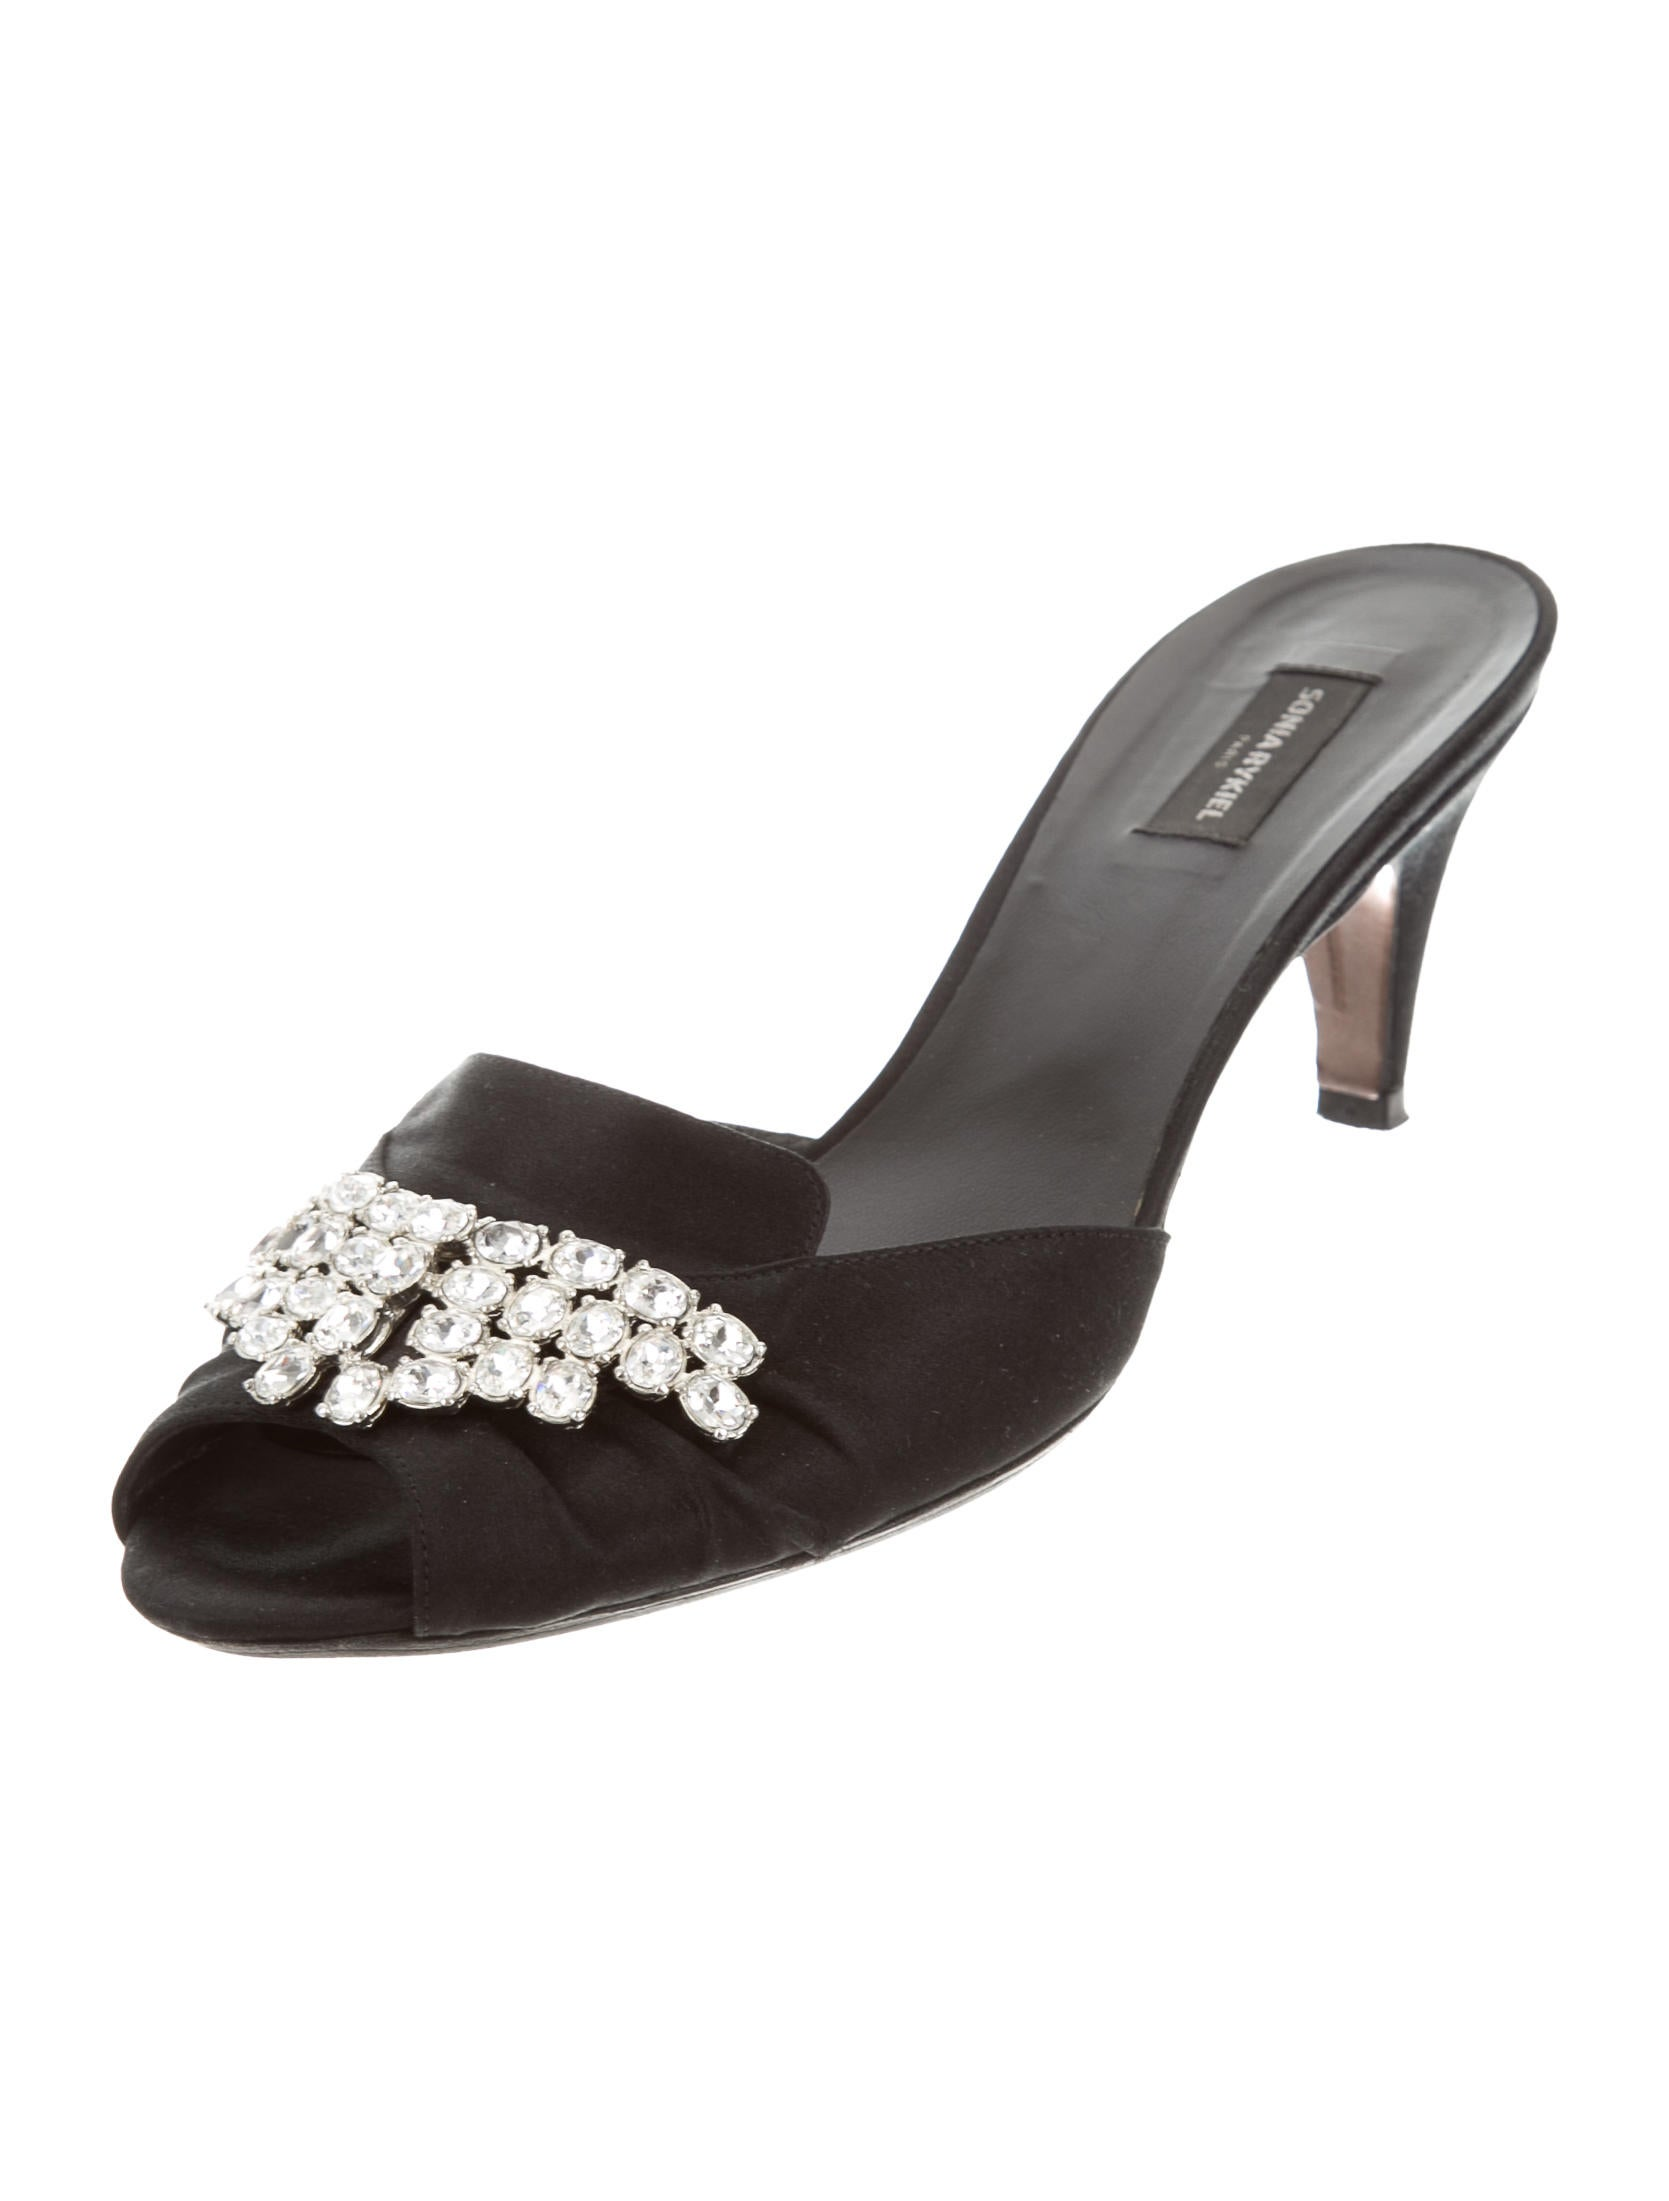 latest collections Sonia Rykiel Embellished Satin Mules huge surprise cheap price buy cheap wide range of where can you find newest online 3hWlv1Llnm